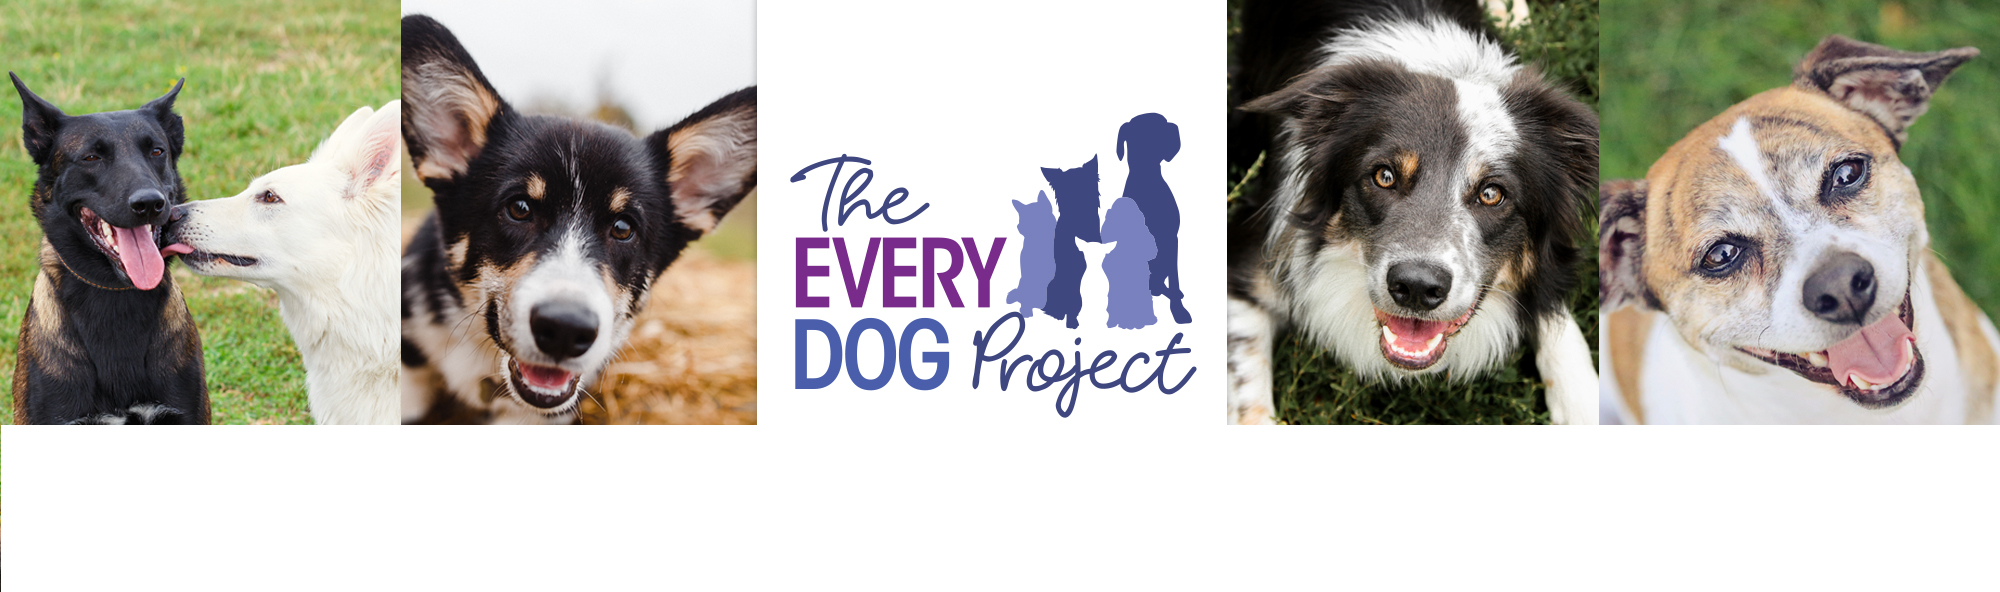 The Every Dog Project